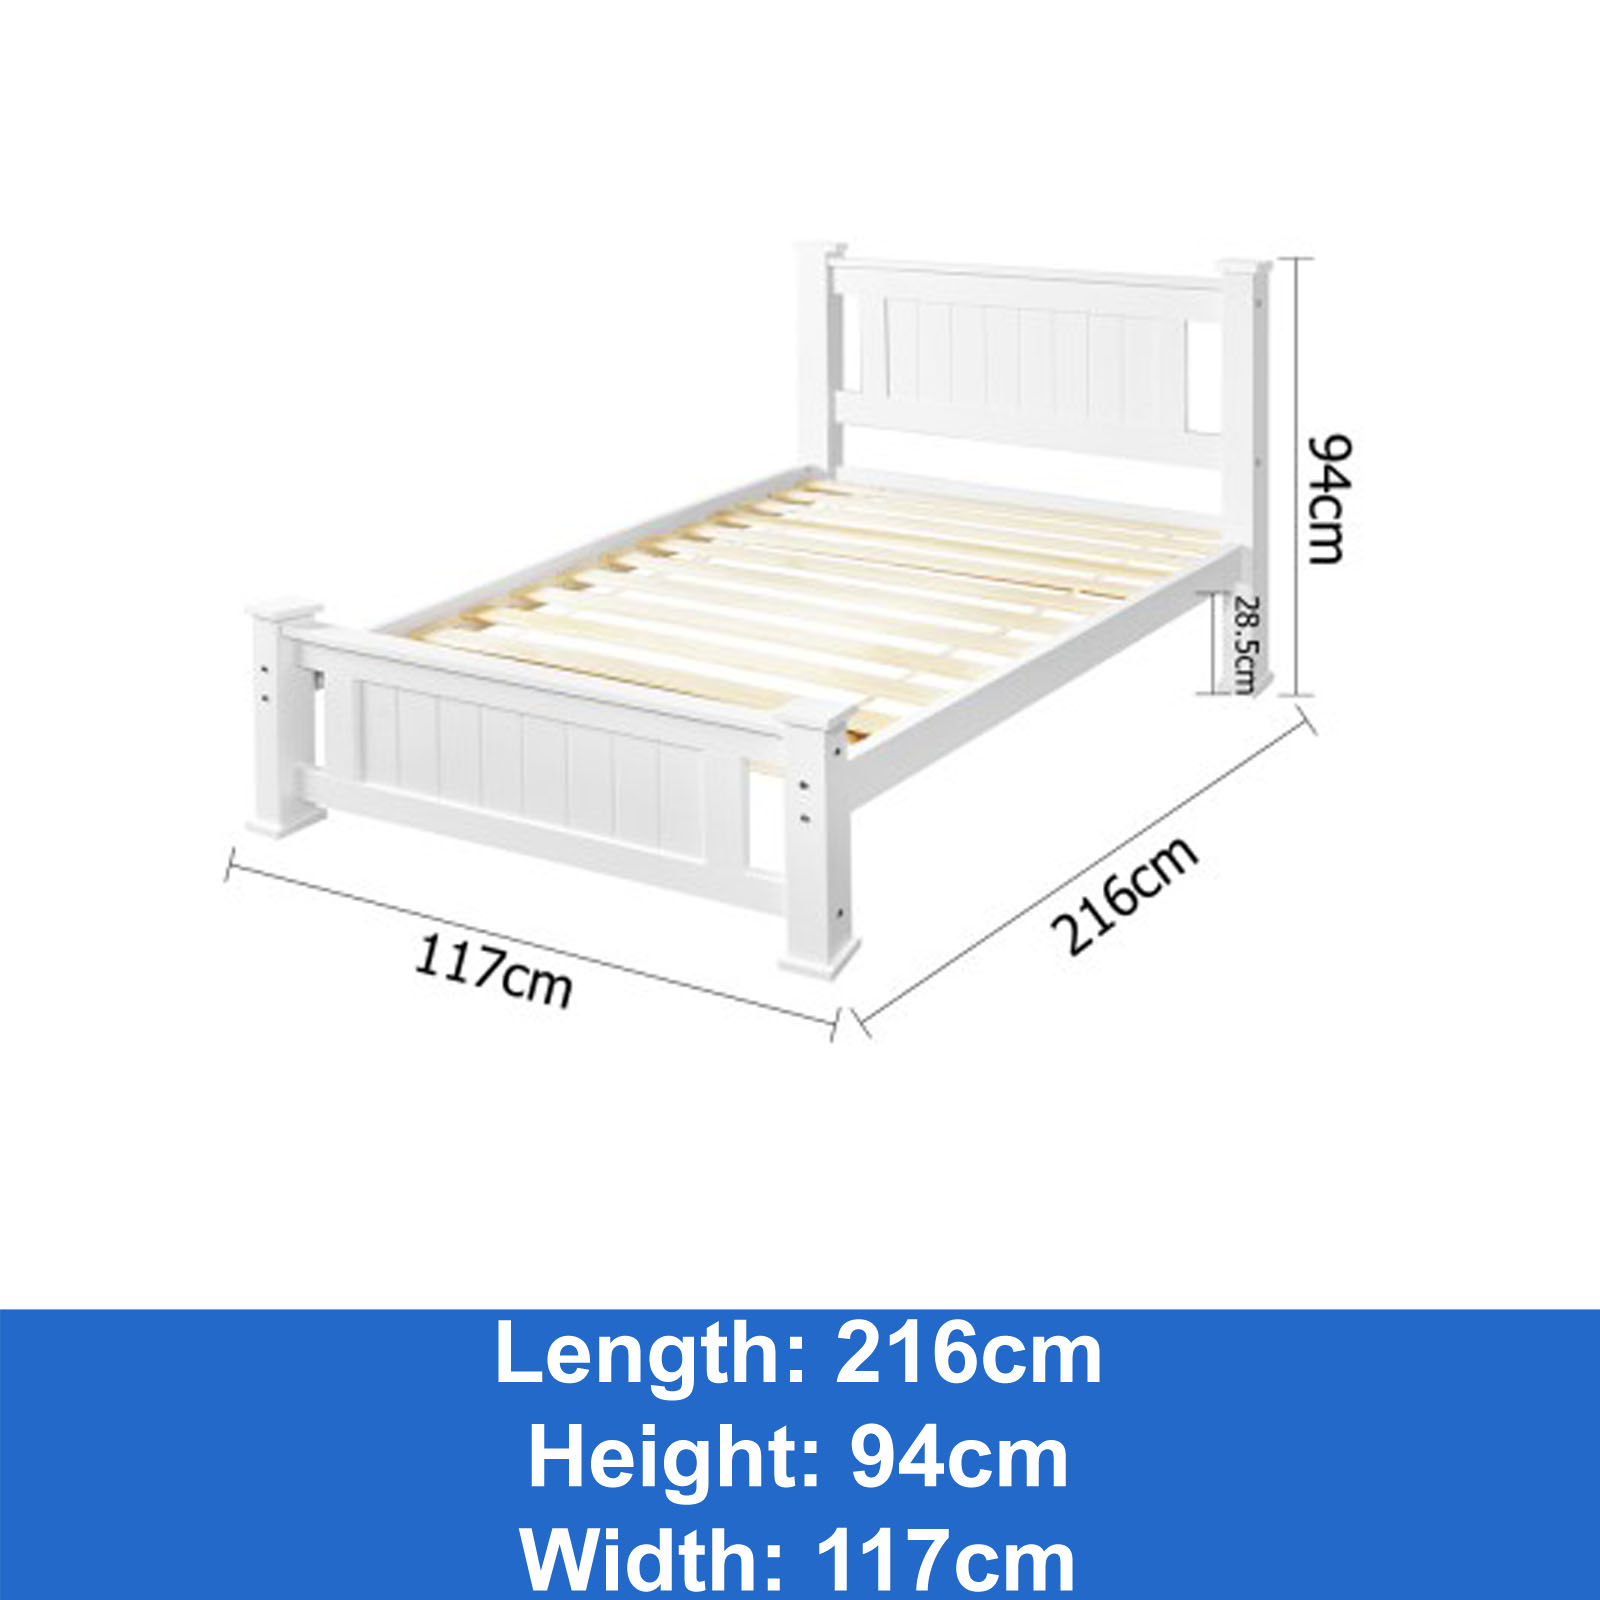 Timber King Single Bed Frame New Wooden King Single Bed Frame White Timber Slats Pine Wood